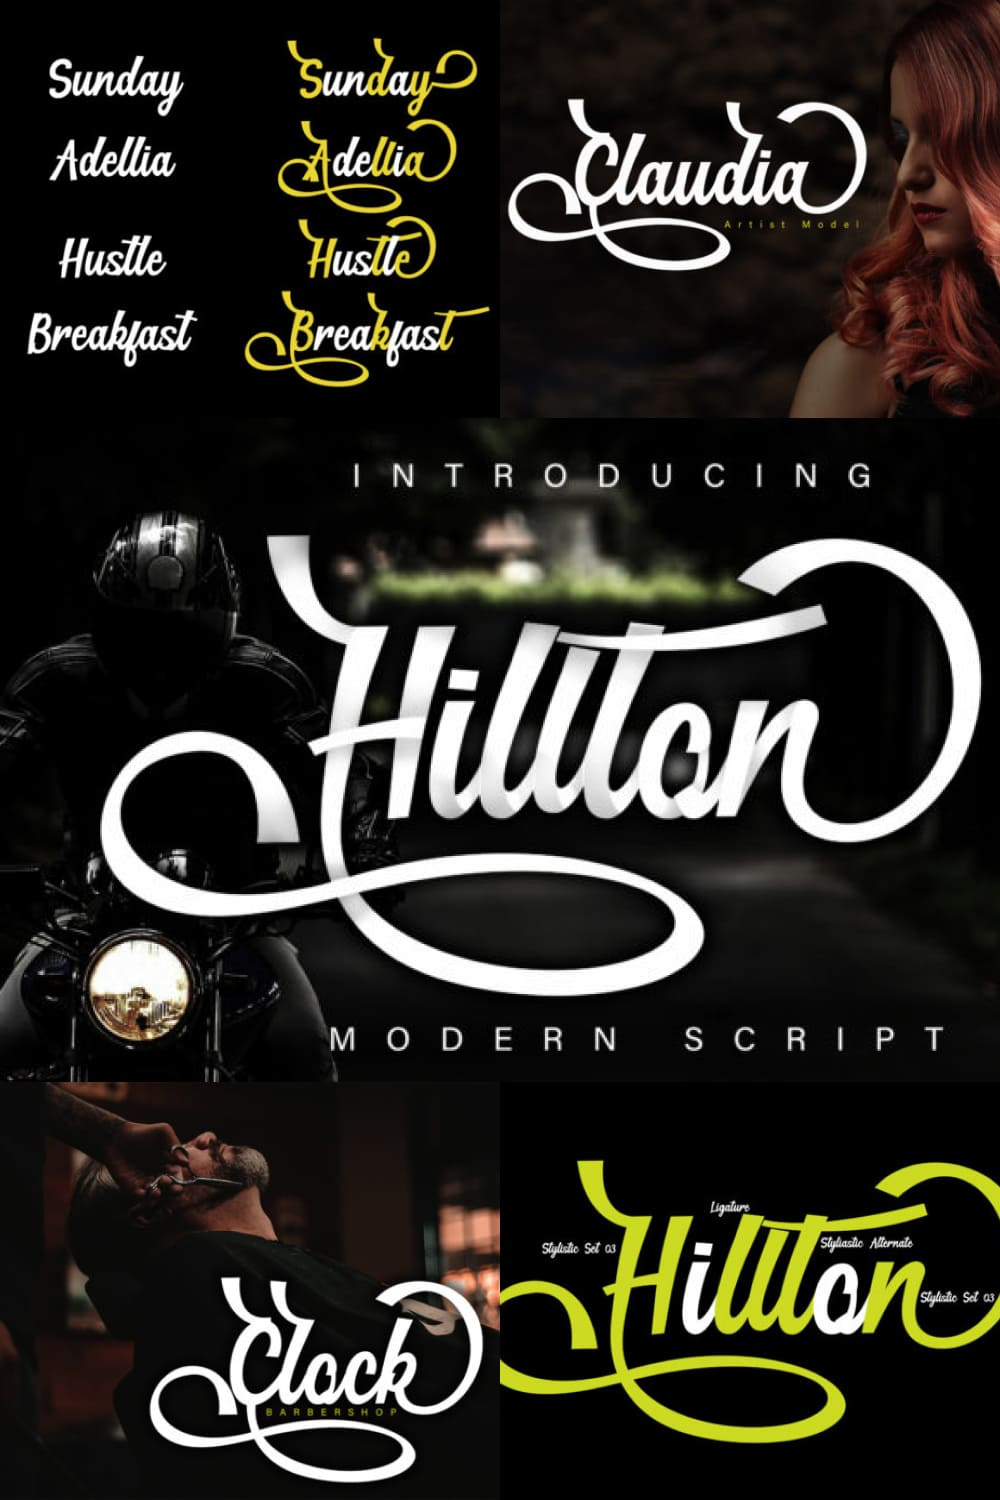 Hillton is a classy, elegant and super stylish modern script font perfectly suited for many projects.